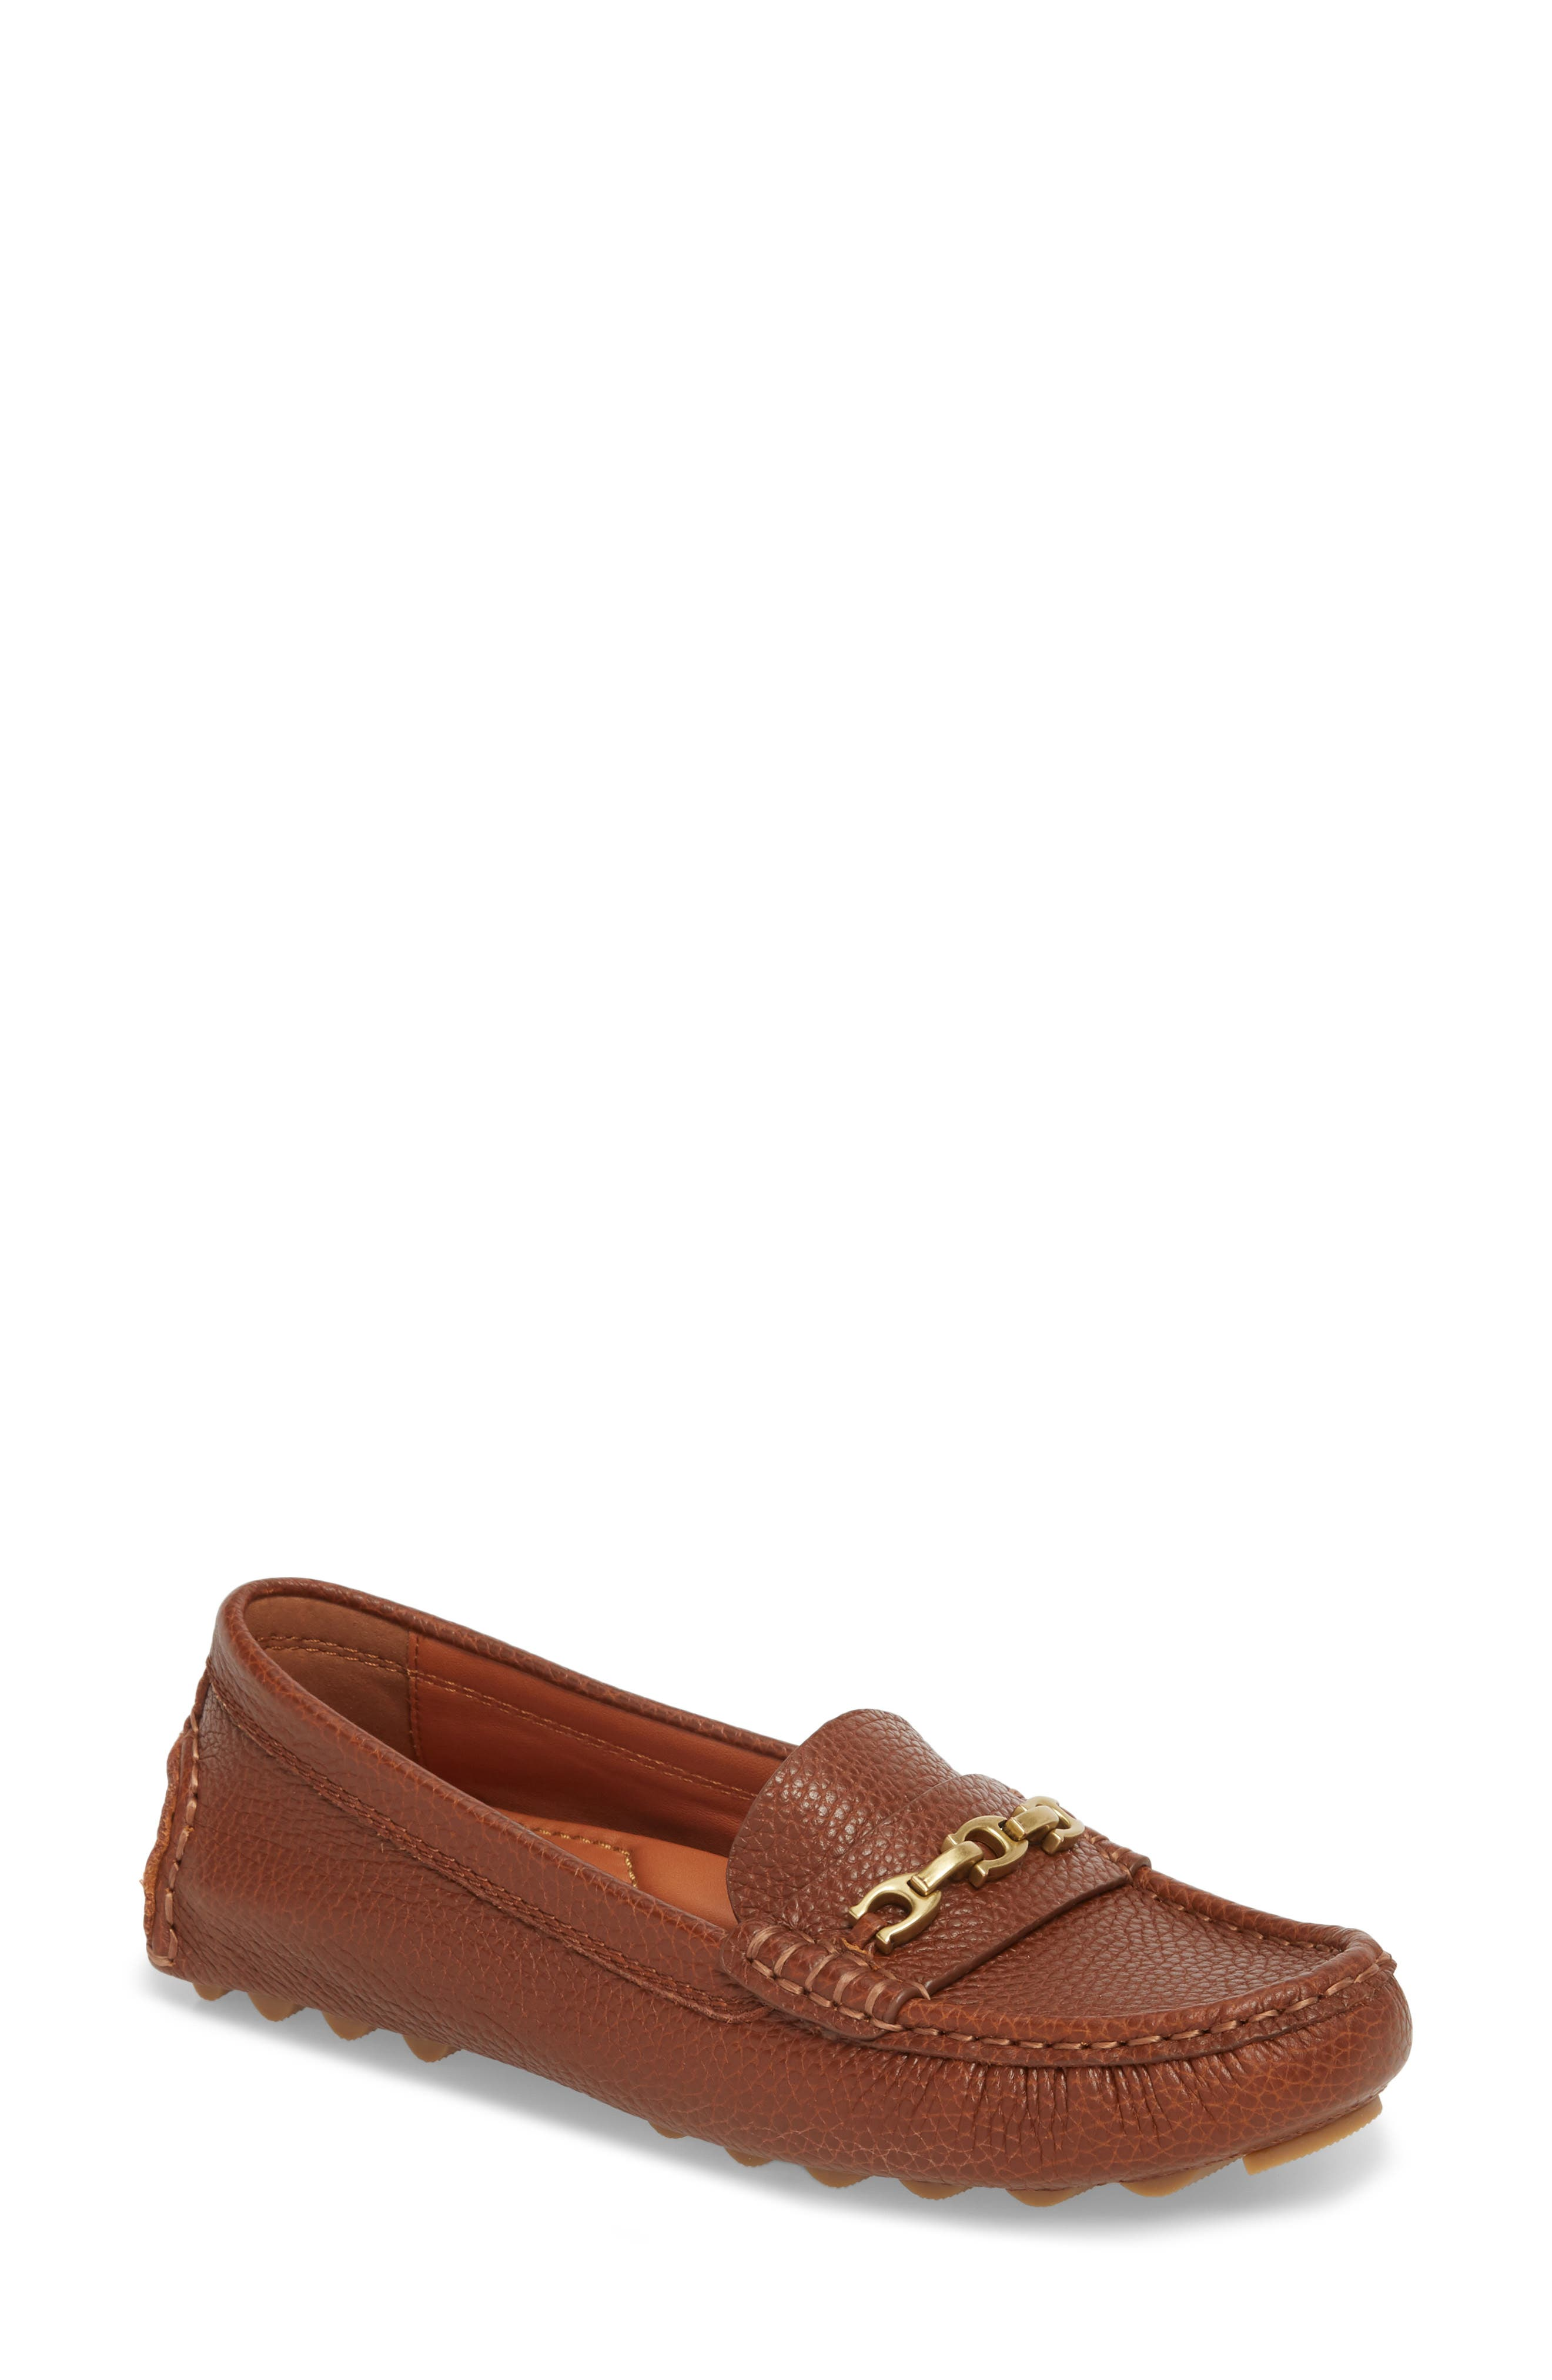 COACH, Crosby Driver Loafer, Main thumbnail 1, color, LION PEBBLED LEATHER